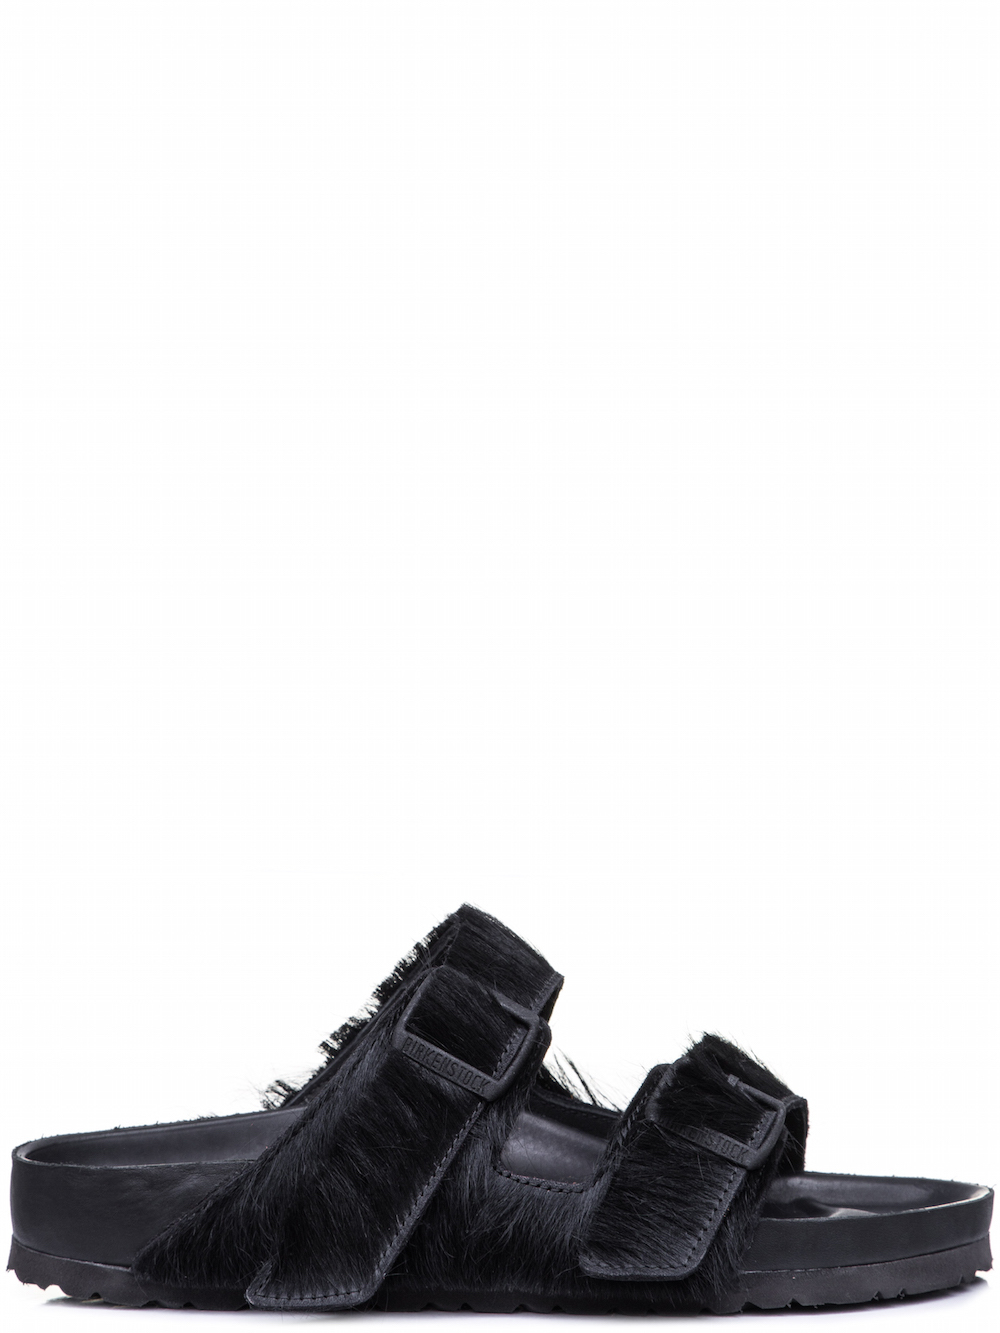 RICK OWENS X BIRKENSTOCK ARIZONA SANDAL IN BLACK COW FUR